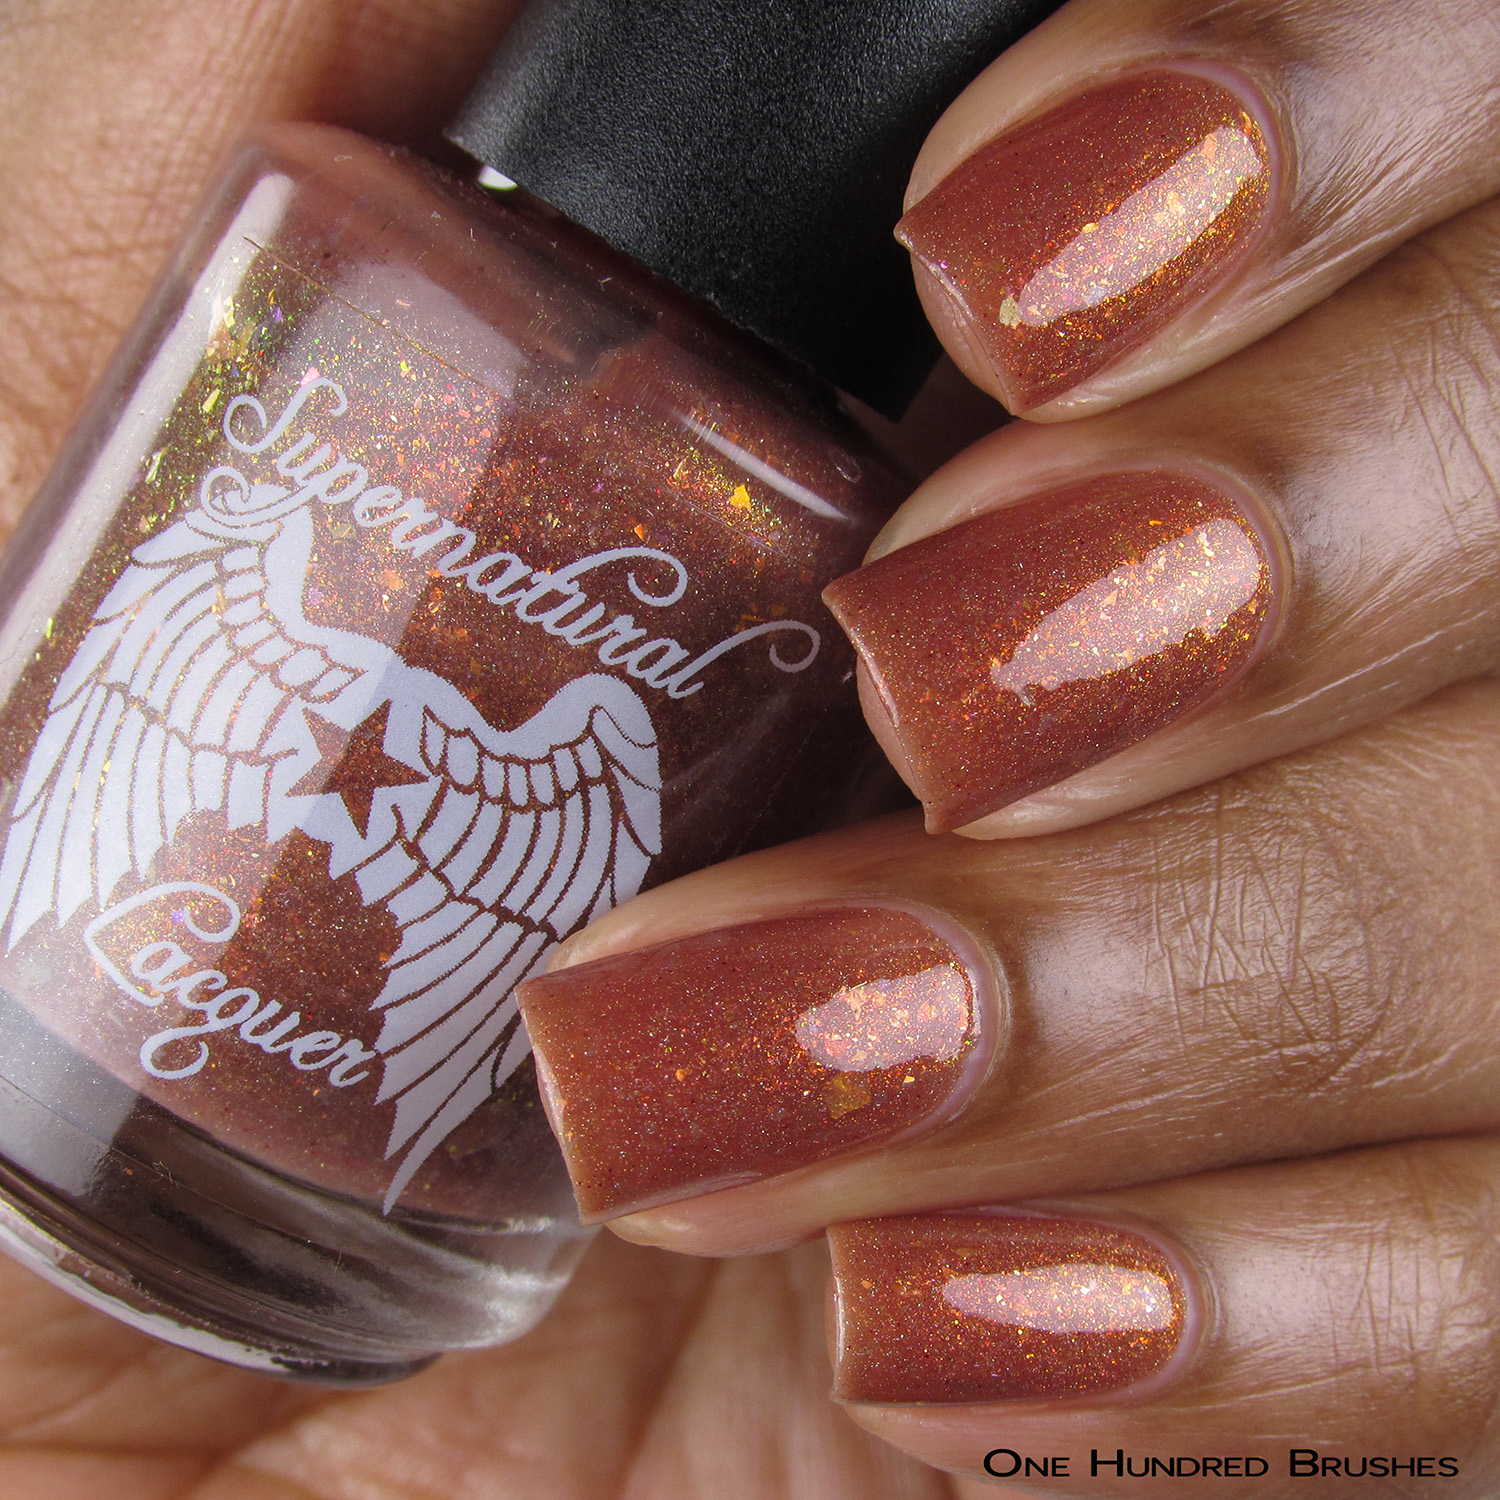 Pretty Cunning. Don't Ya Think - Supernatural Lacquer - HHC Sep 2018